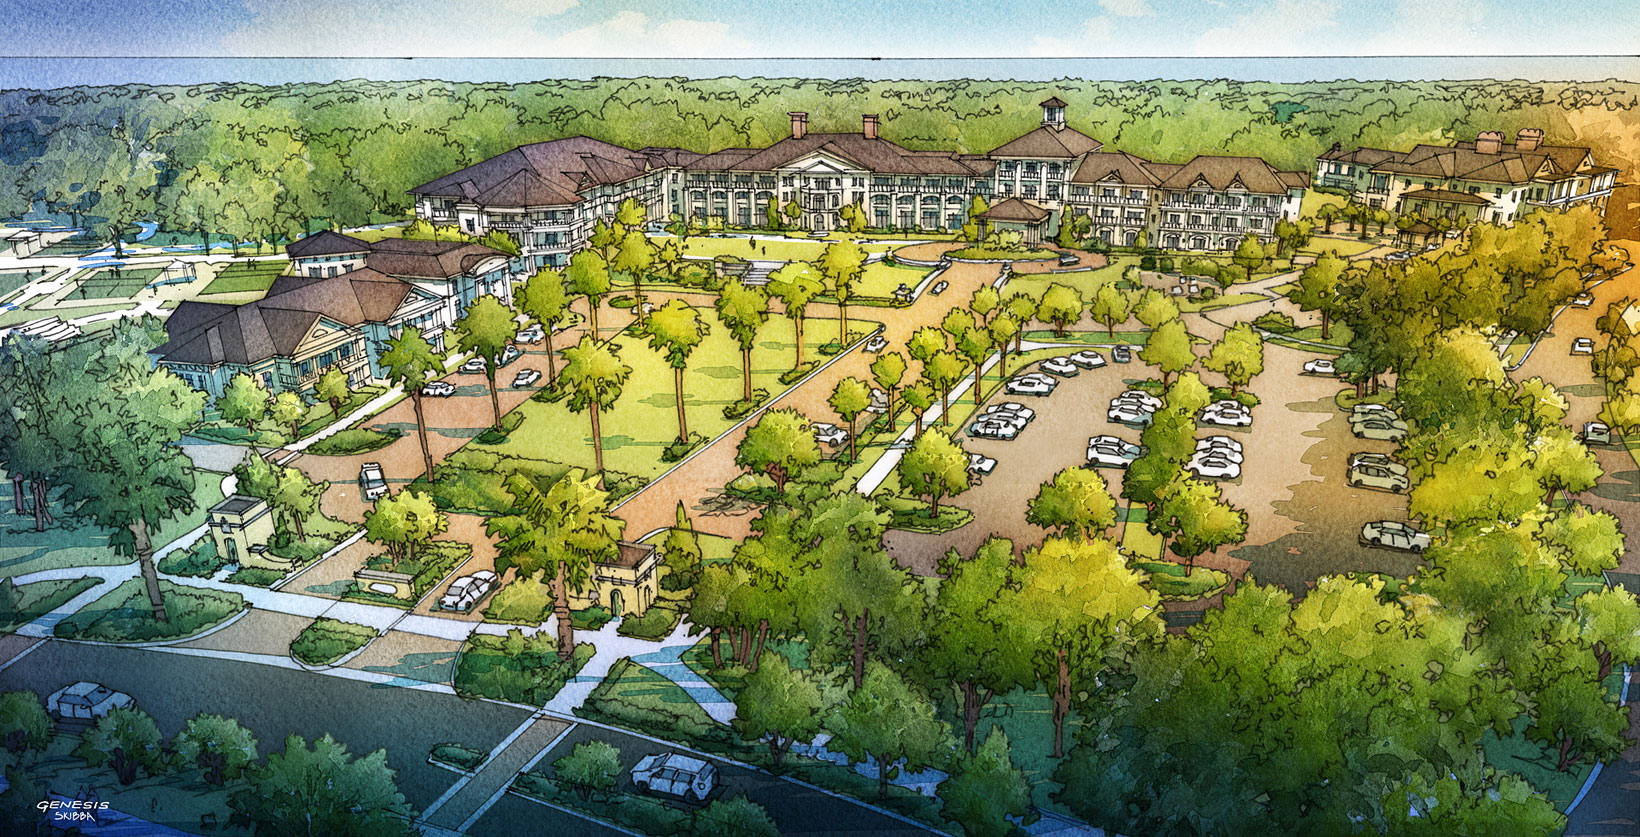 515181 Digital Watercolor Architectural Rendering of Sea Pines Housing from an Aerial View for Cooper Carry